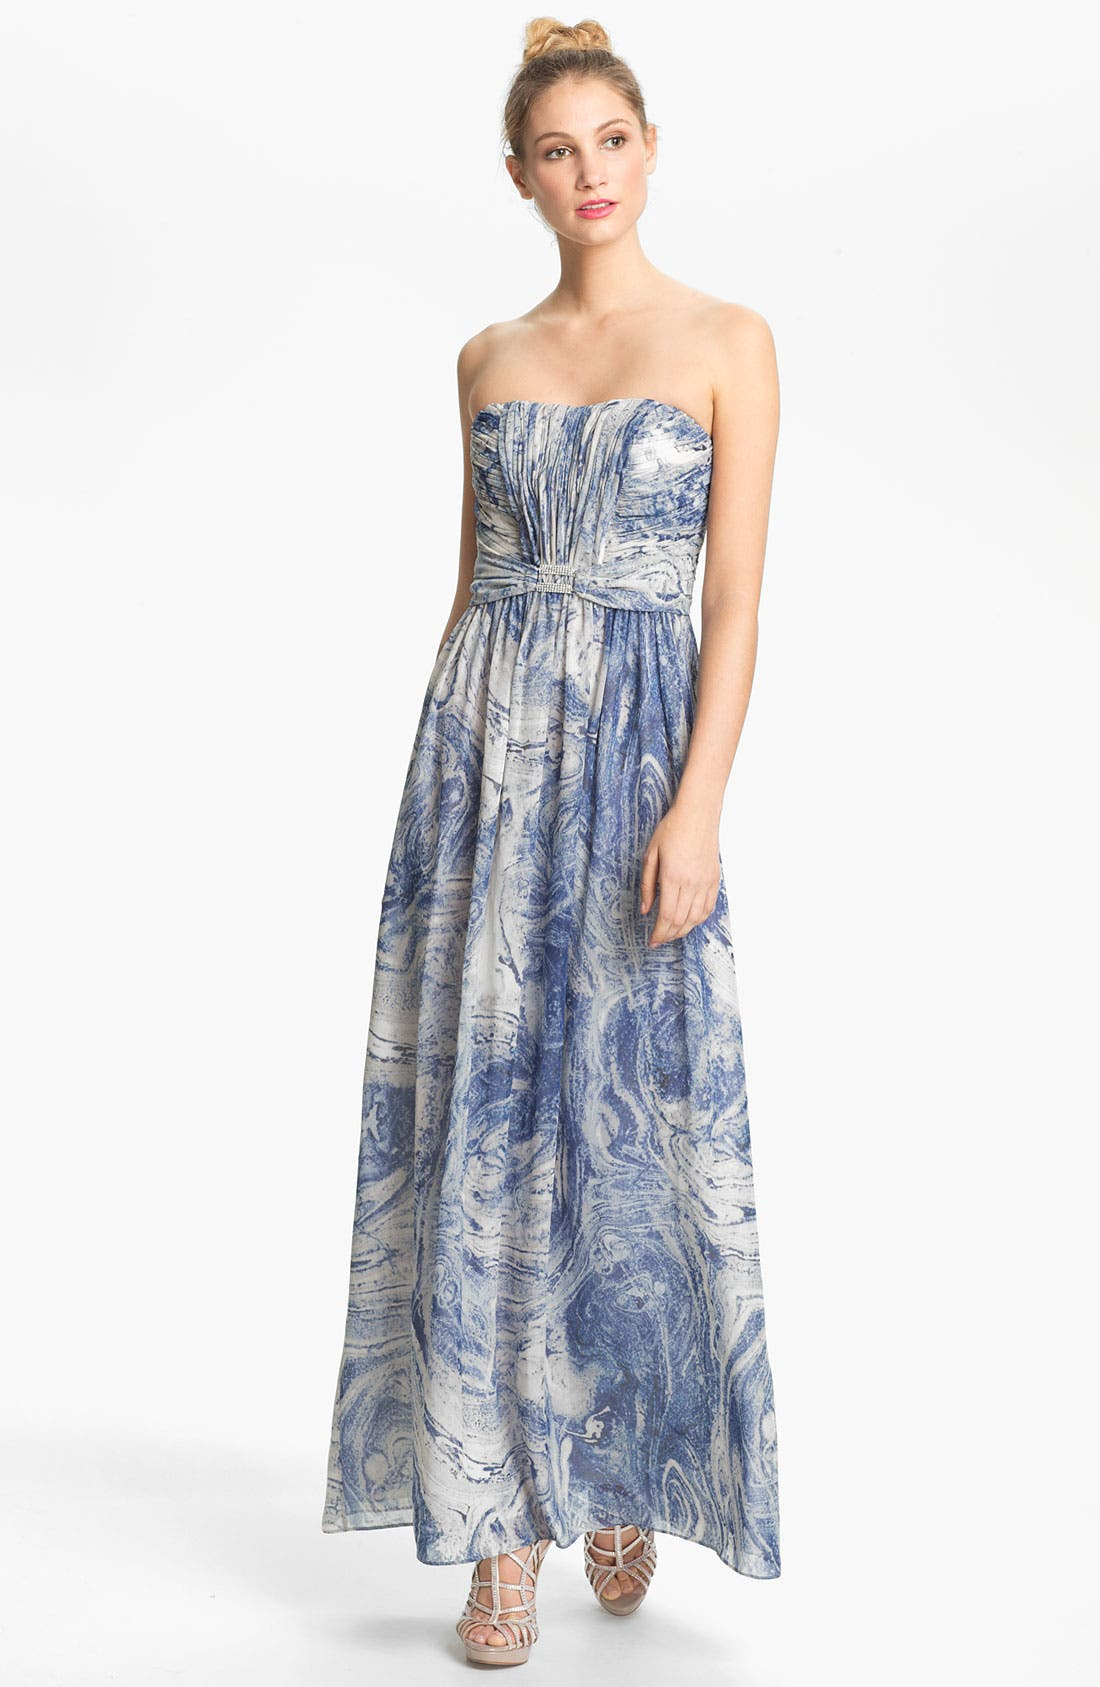 Alternate Image 1 Selected - Calvin Klein Embellished Print Strapless Chiffon Gown